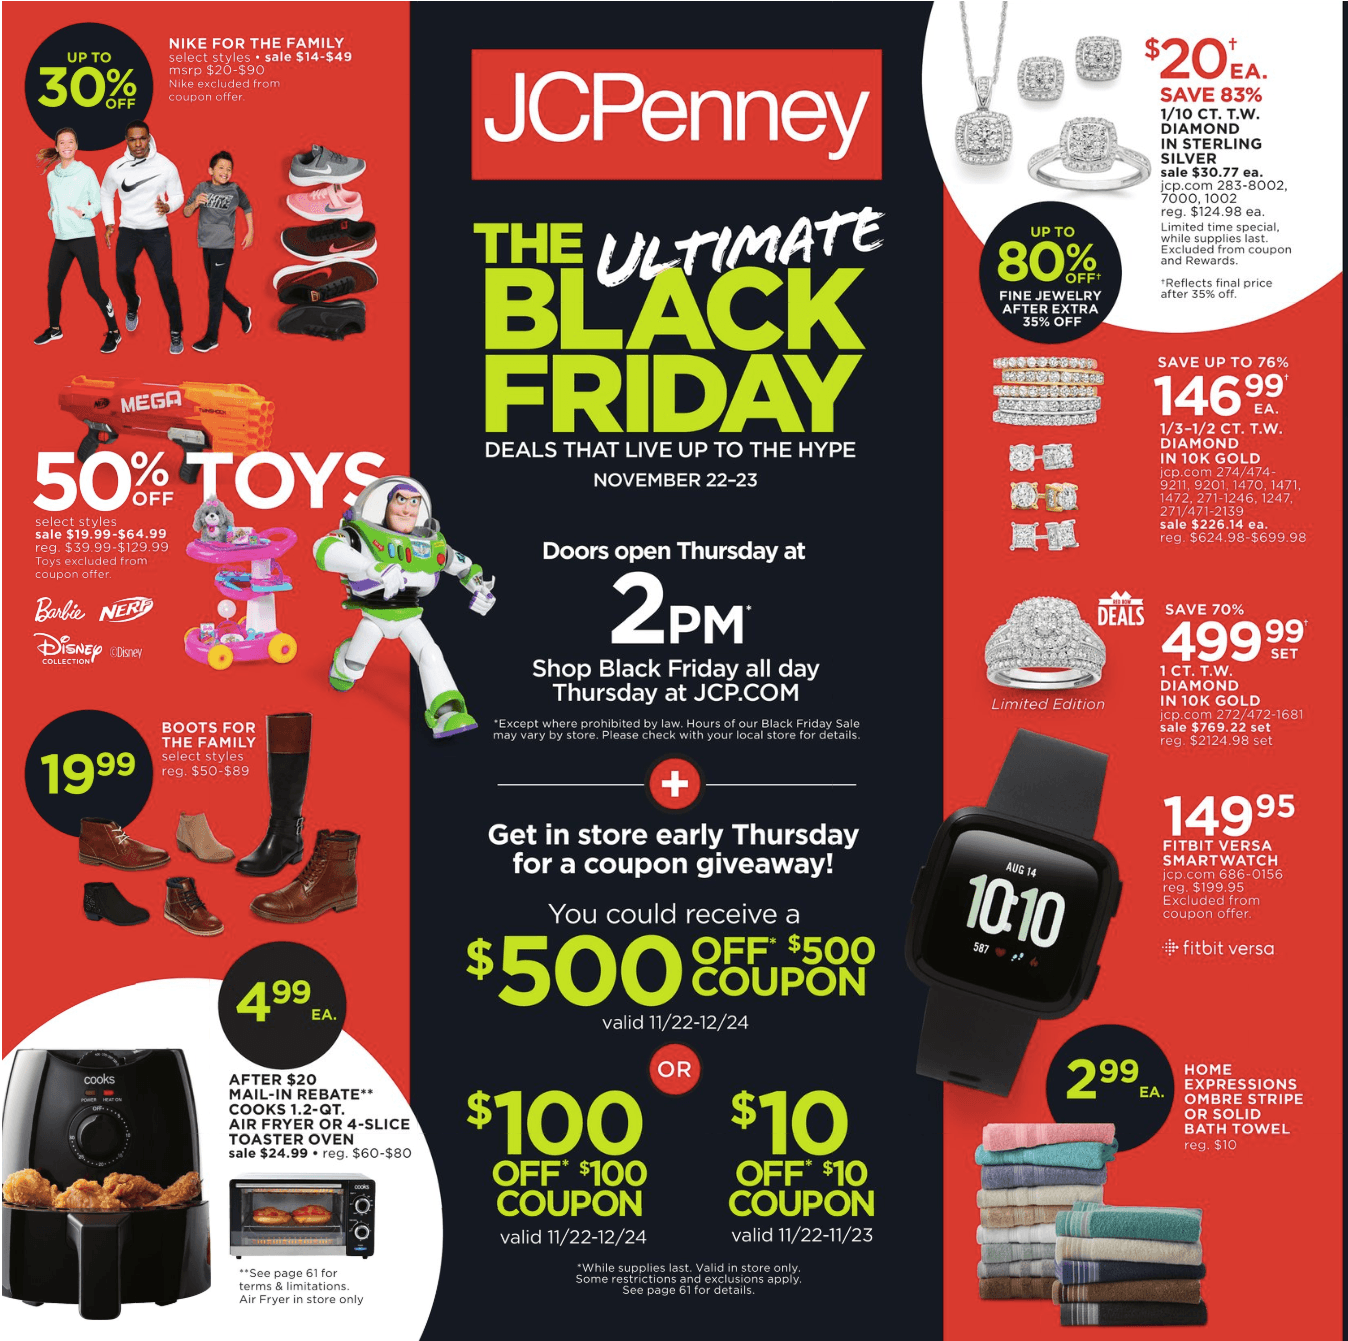 460964c6e JCPenney Black Friday 2018 Ad, Deals and Sales - Savings.com